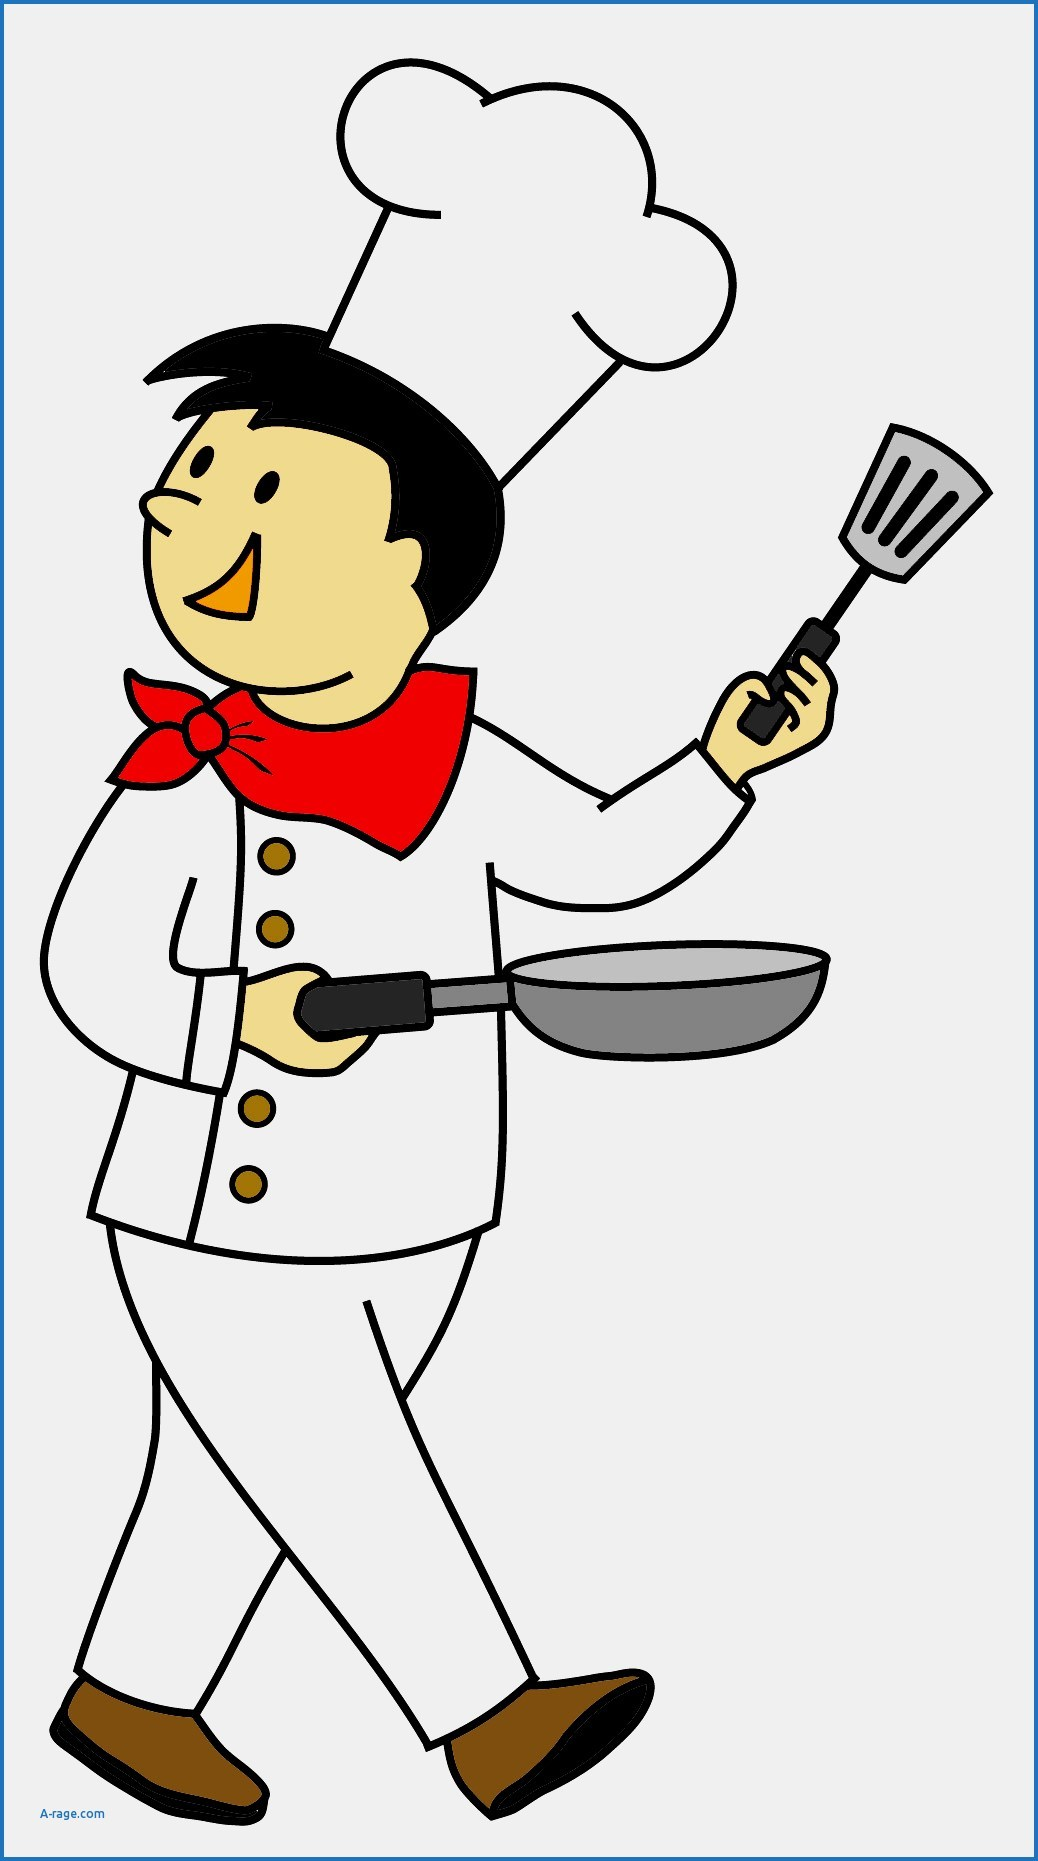 chef hat clipart at getdrawings com free for personal use chef hat rh getdrawings com italian chef clipart free chef clipart free download